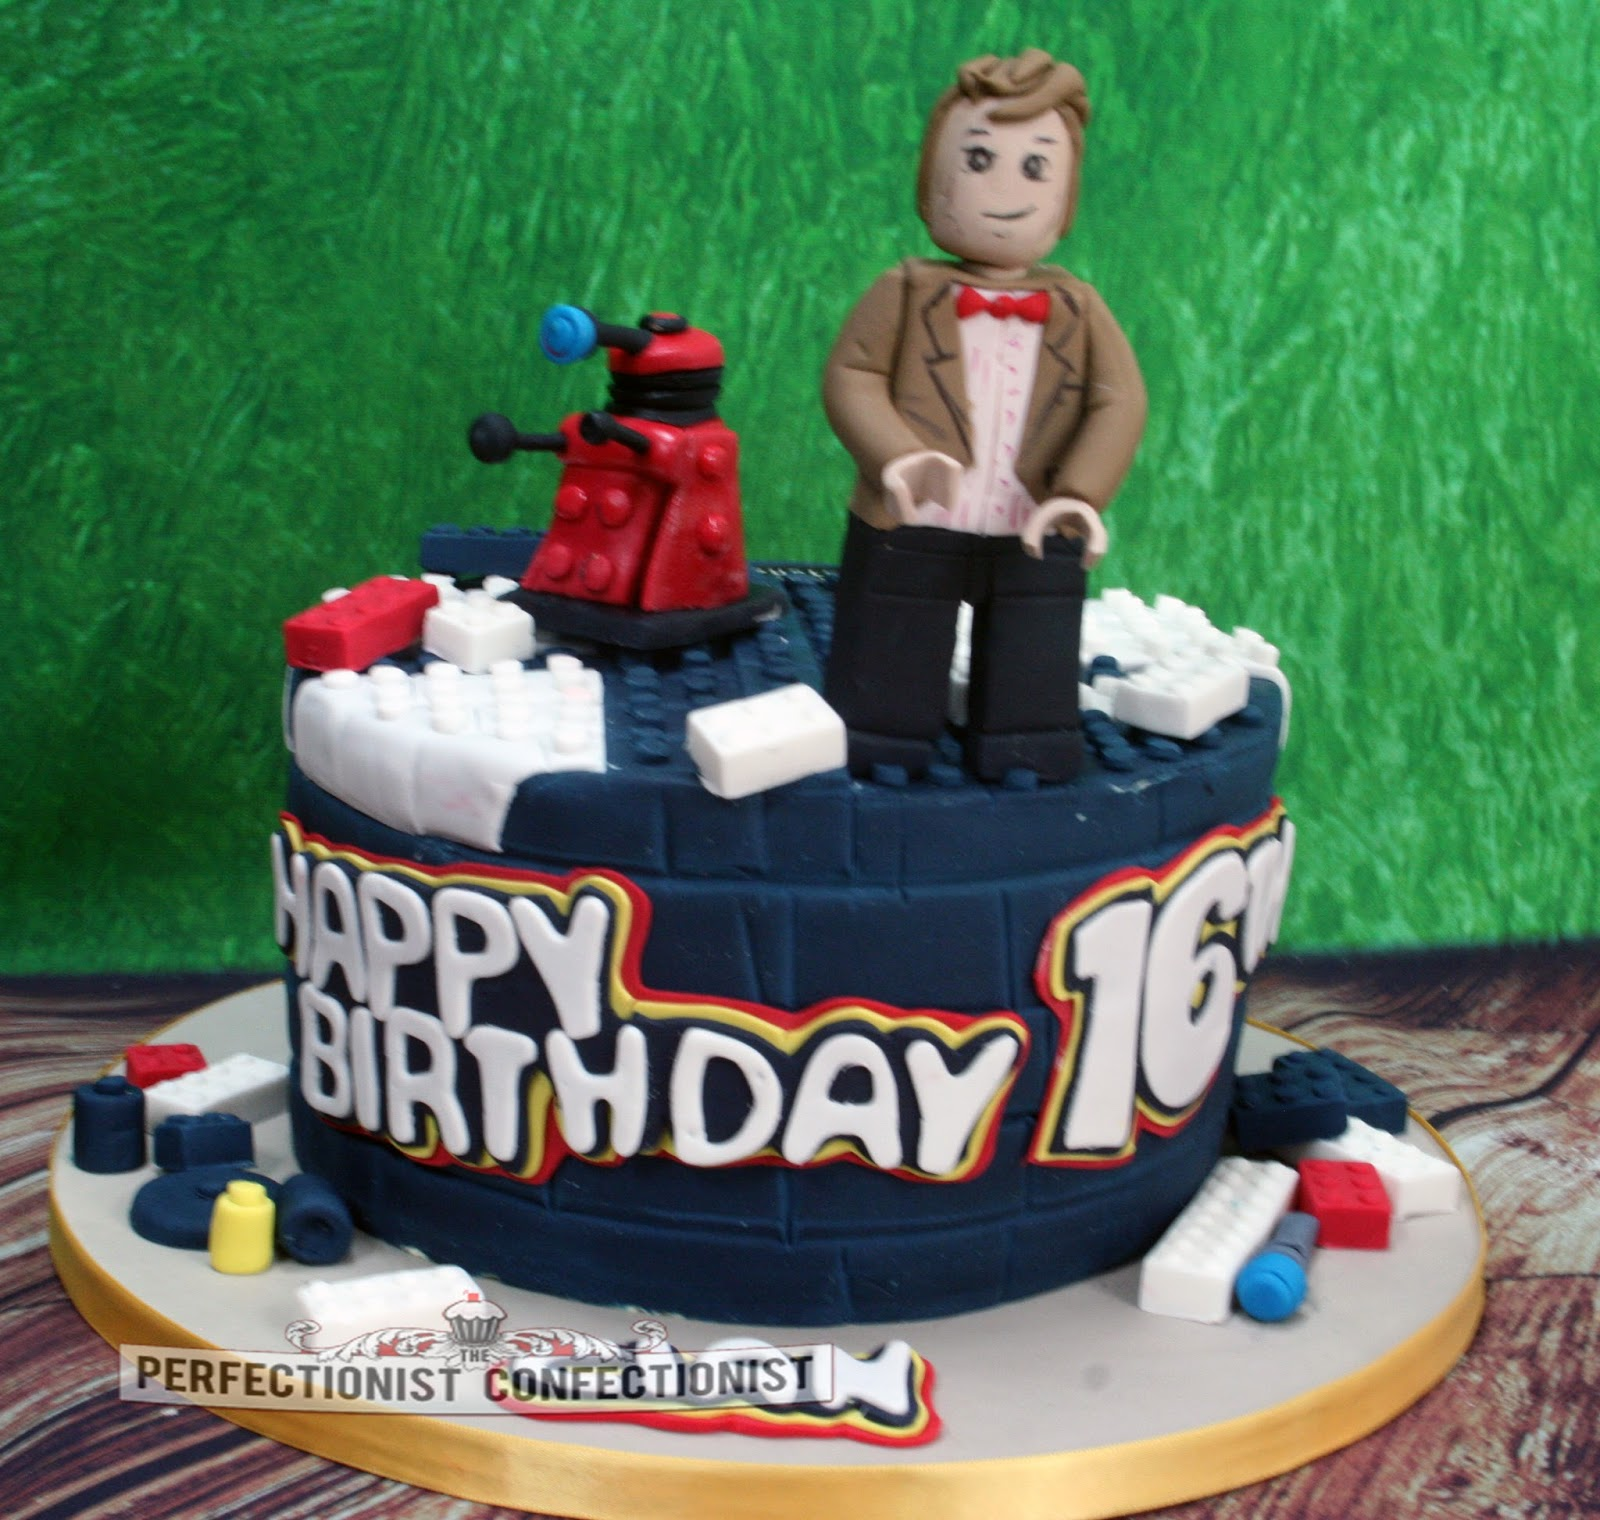 The Perfectionist Confectionist Cian Dr Who Lego Birthday Cake